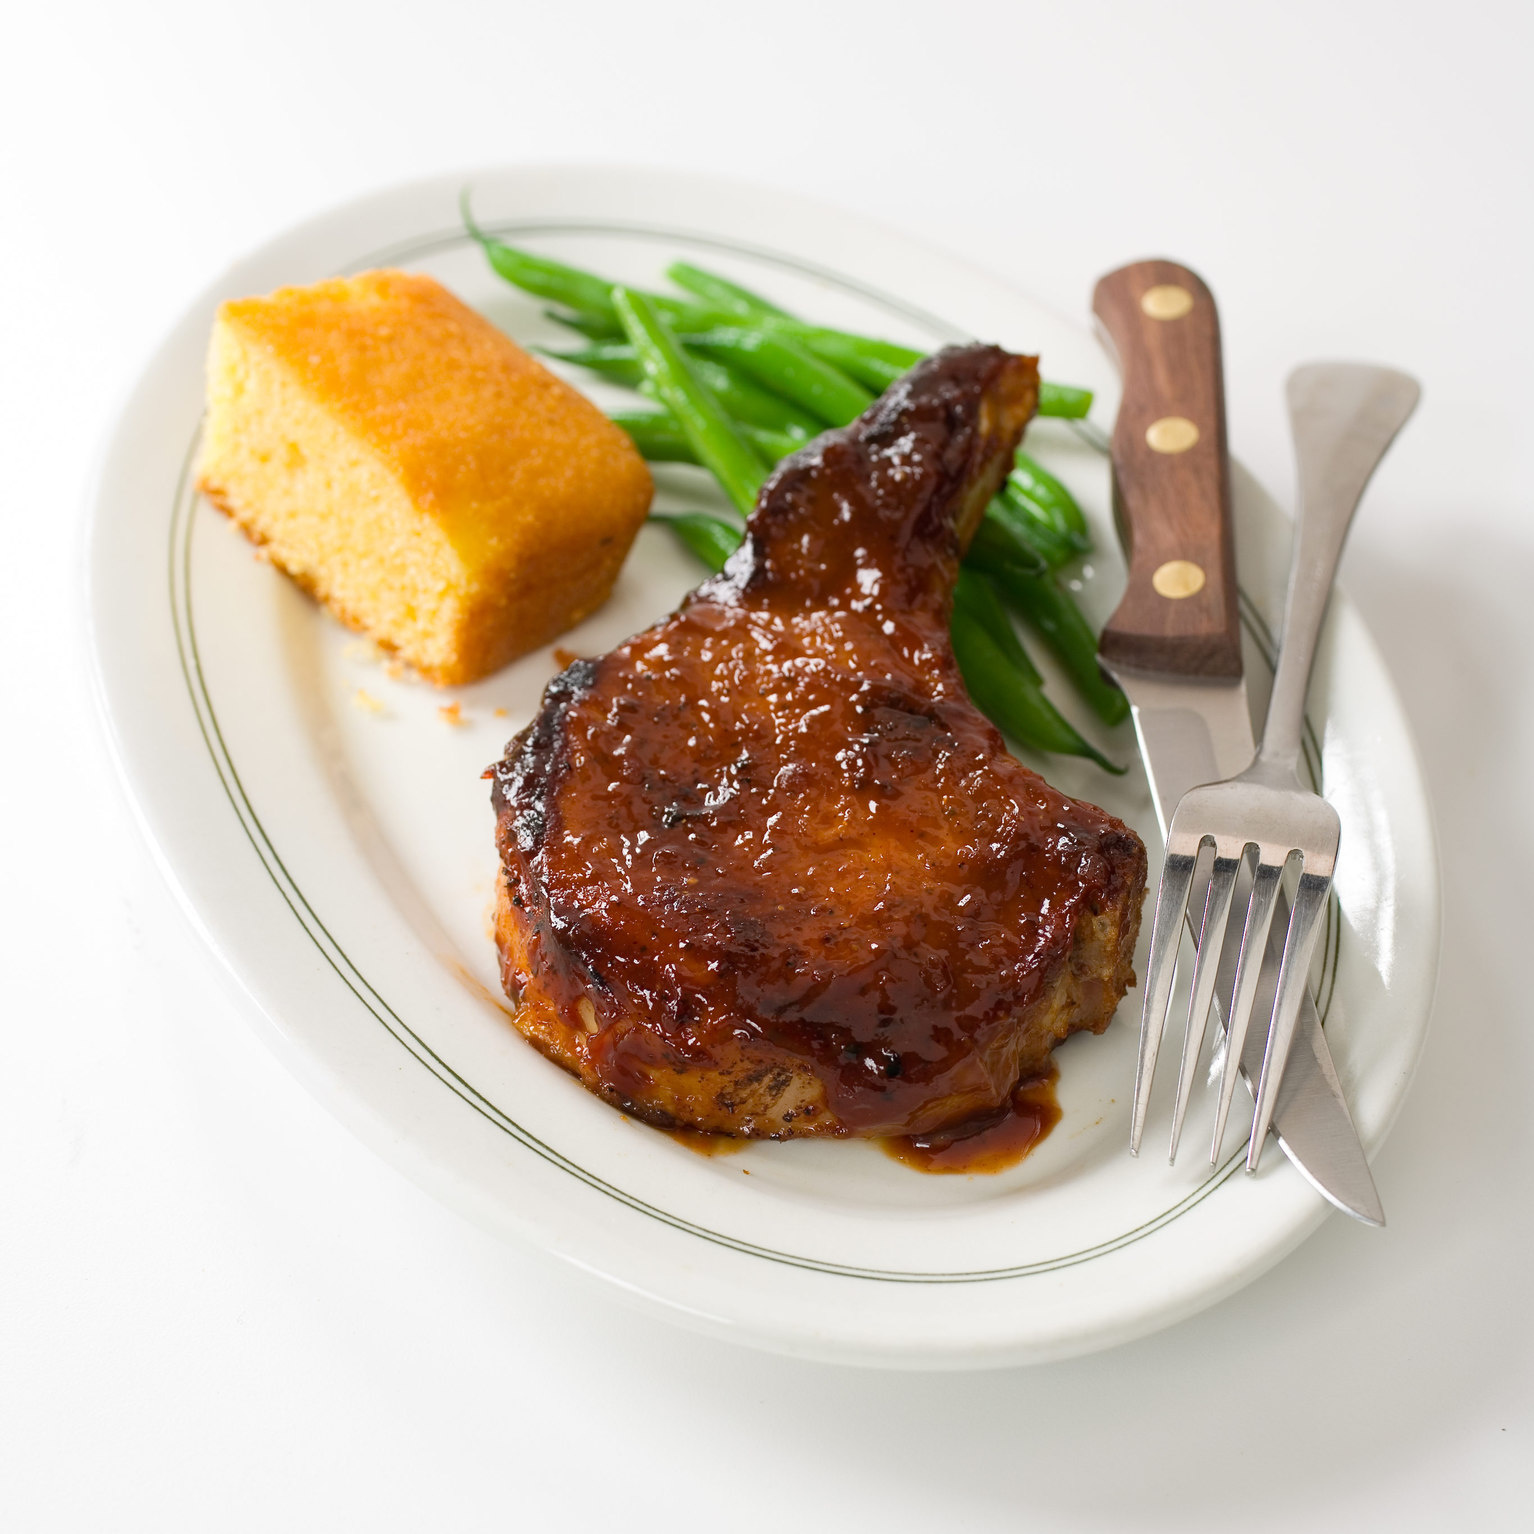 Skillet-Barbecued Pork Chops